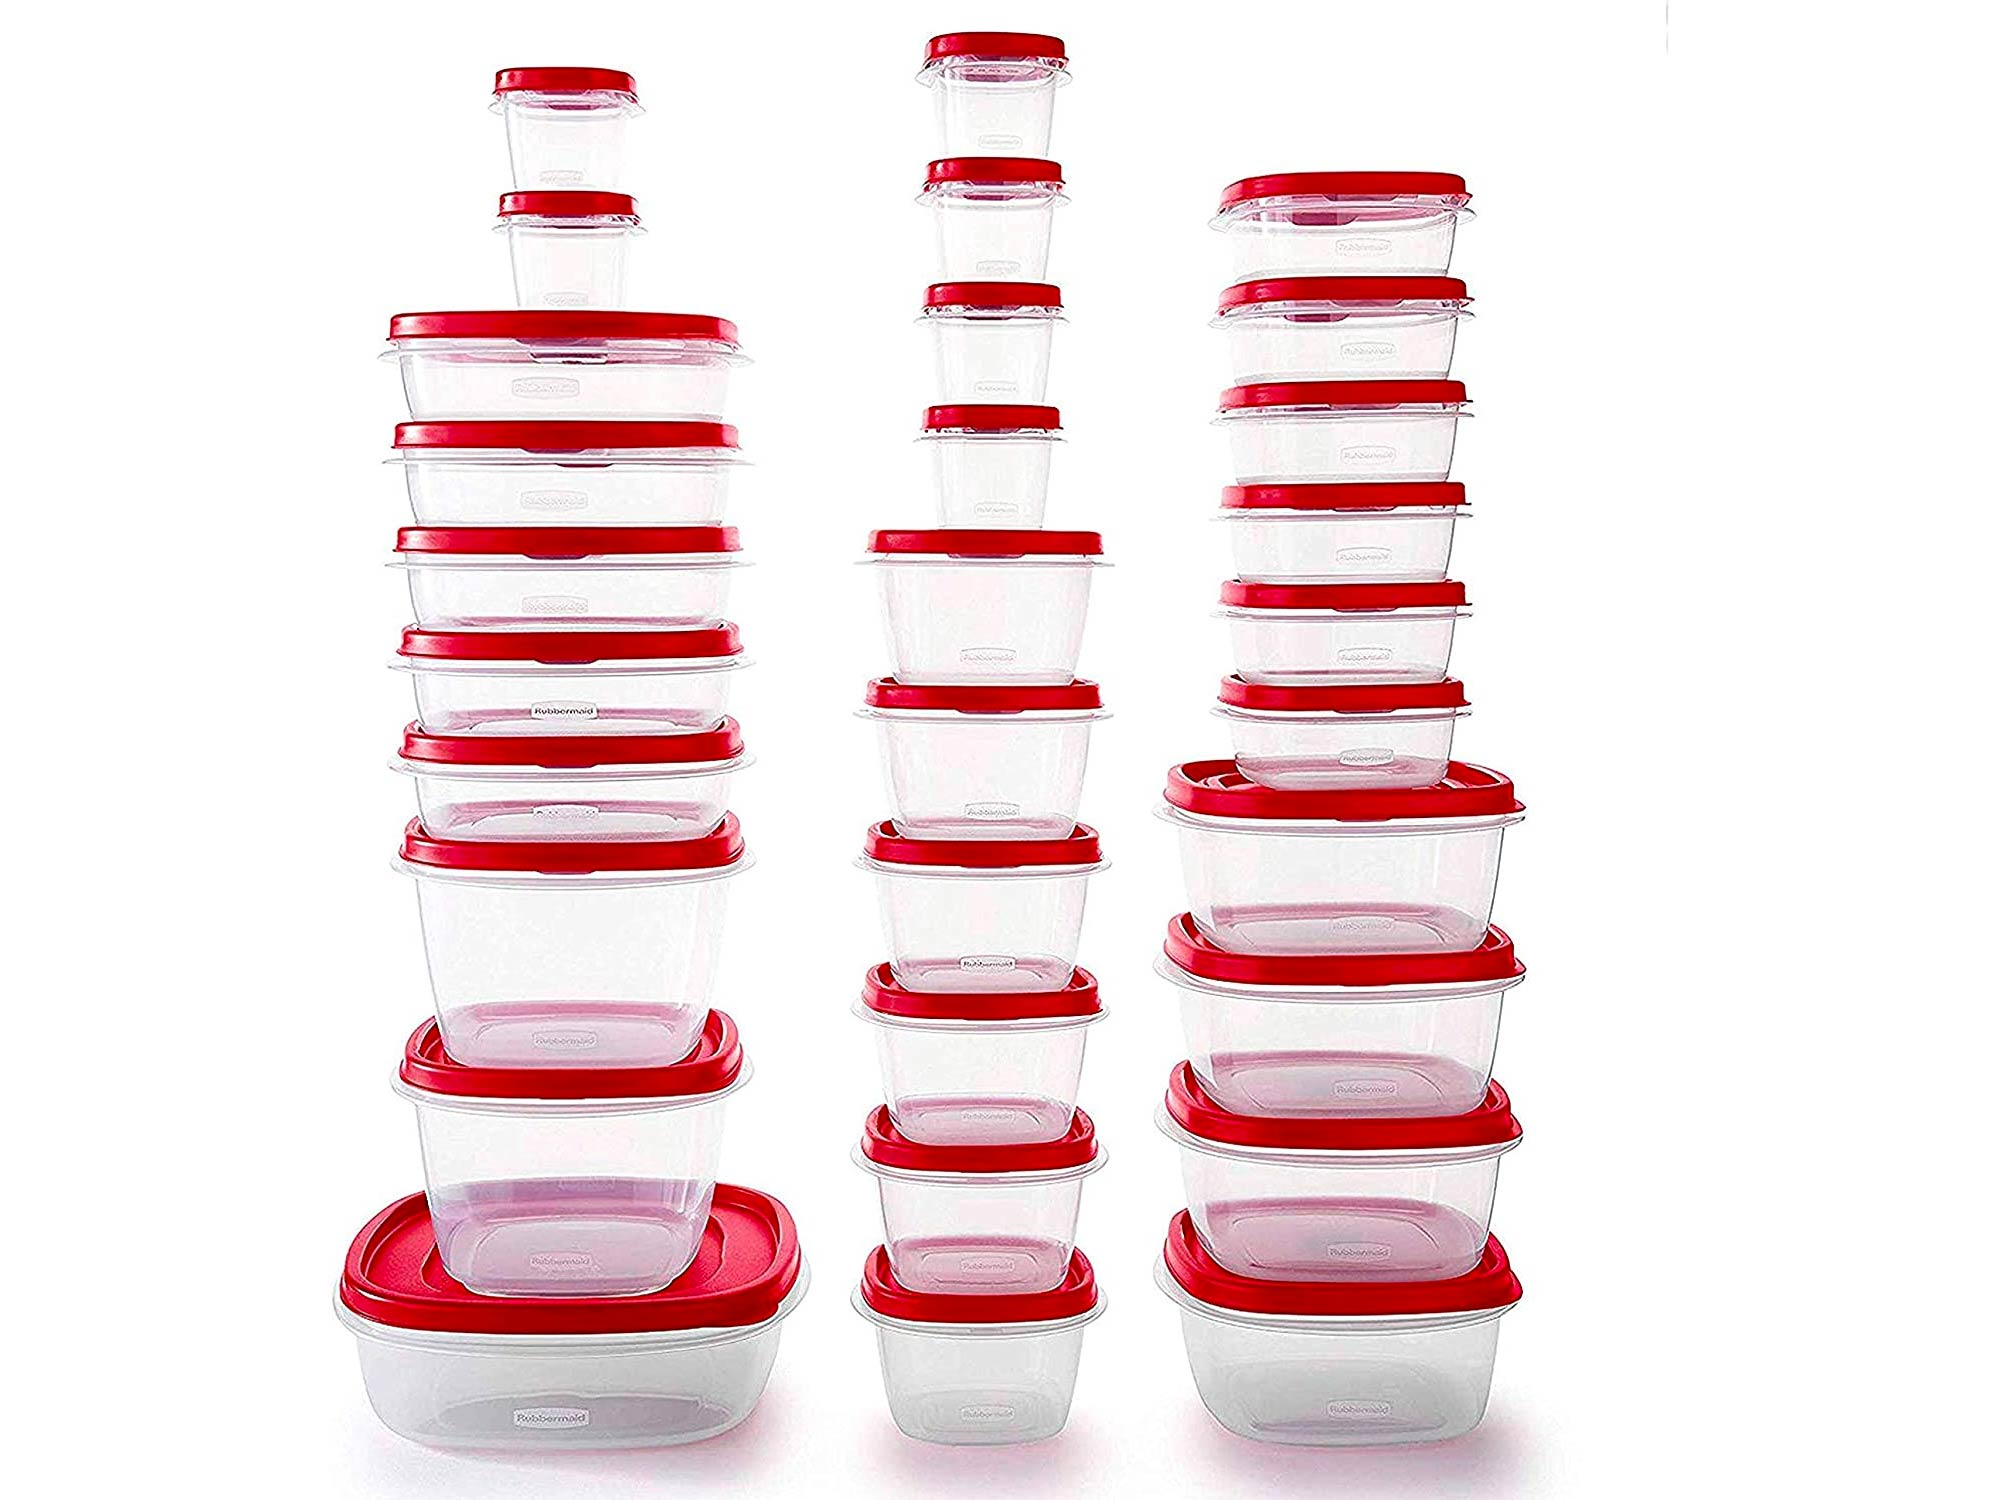 Rubbermaid Easy Find Vented Lids Food Storage Containers, Set of 30